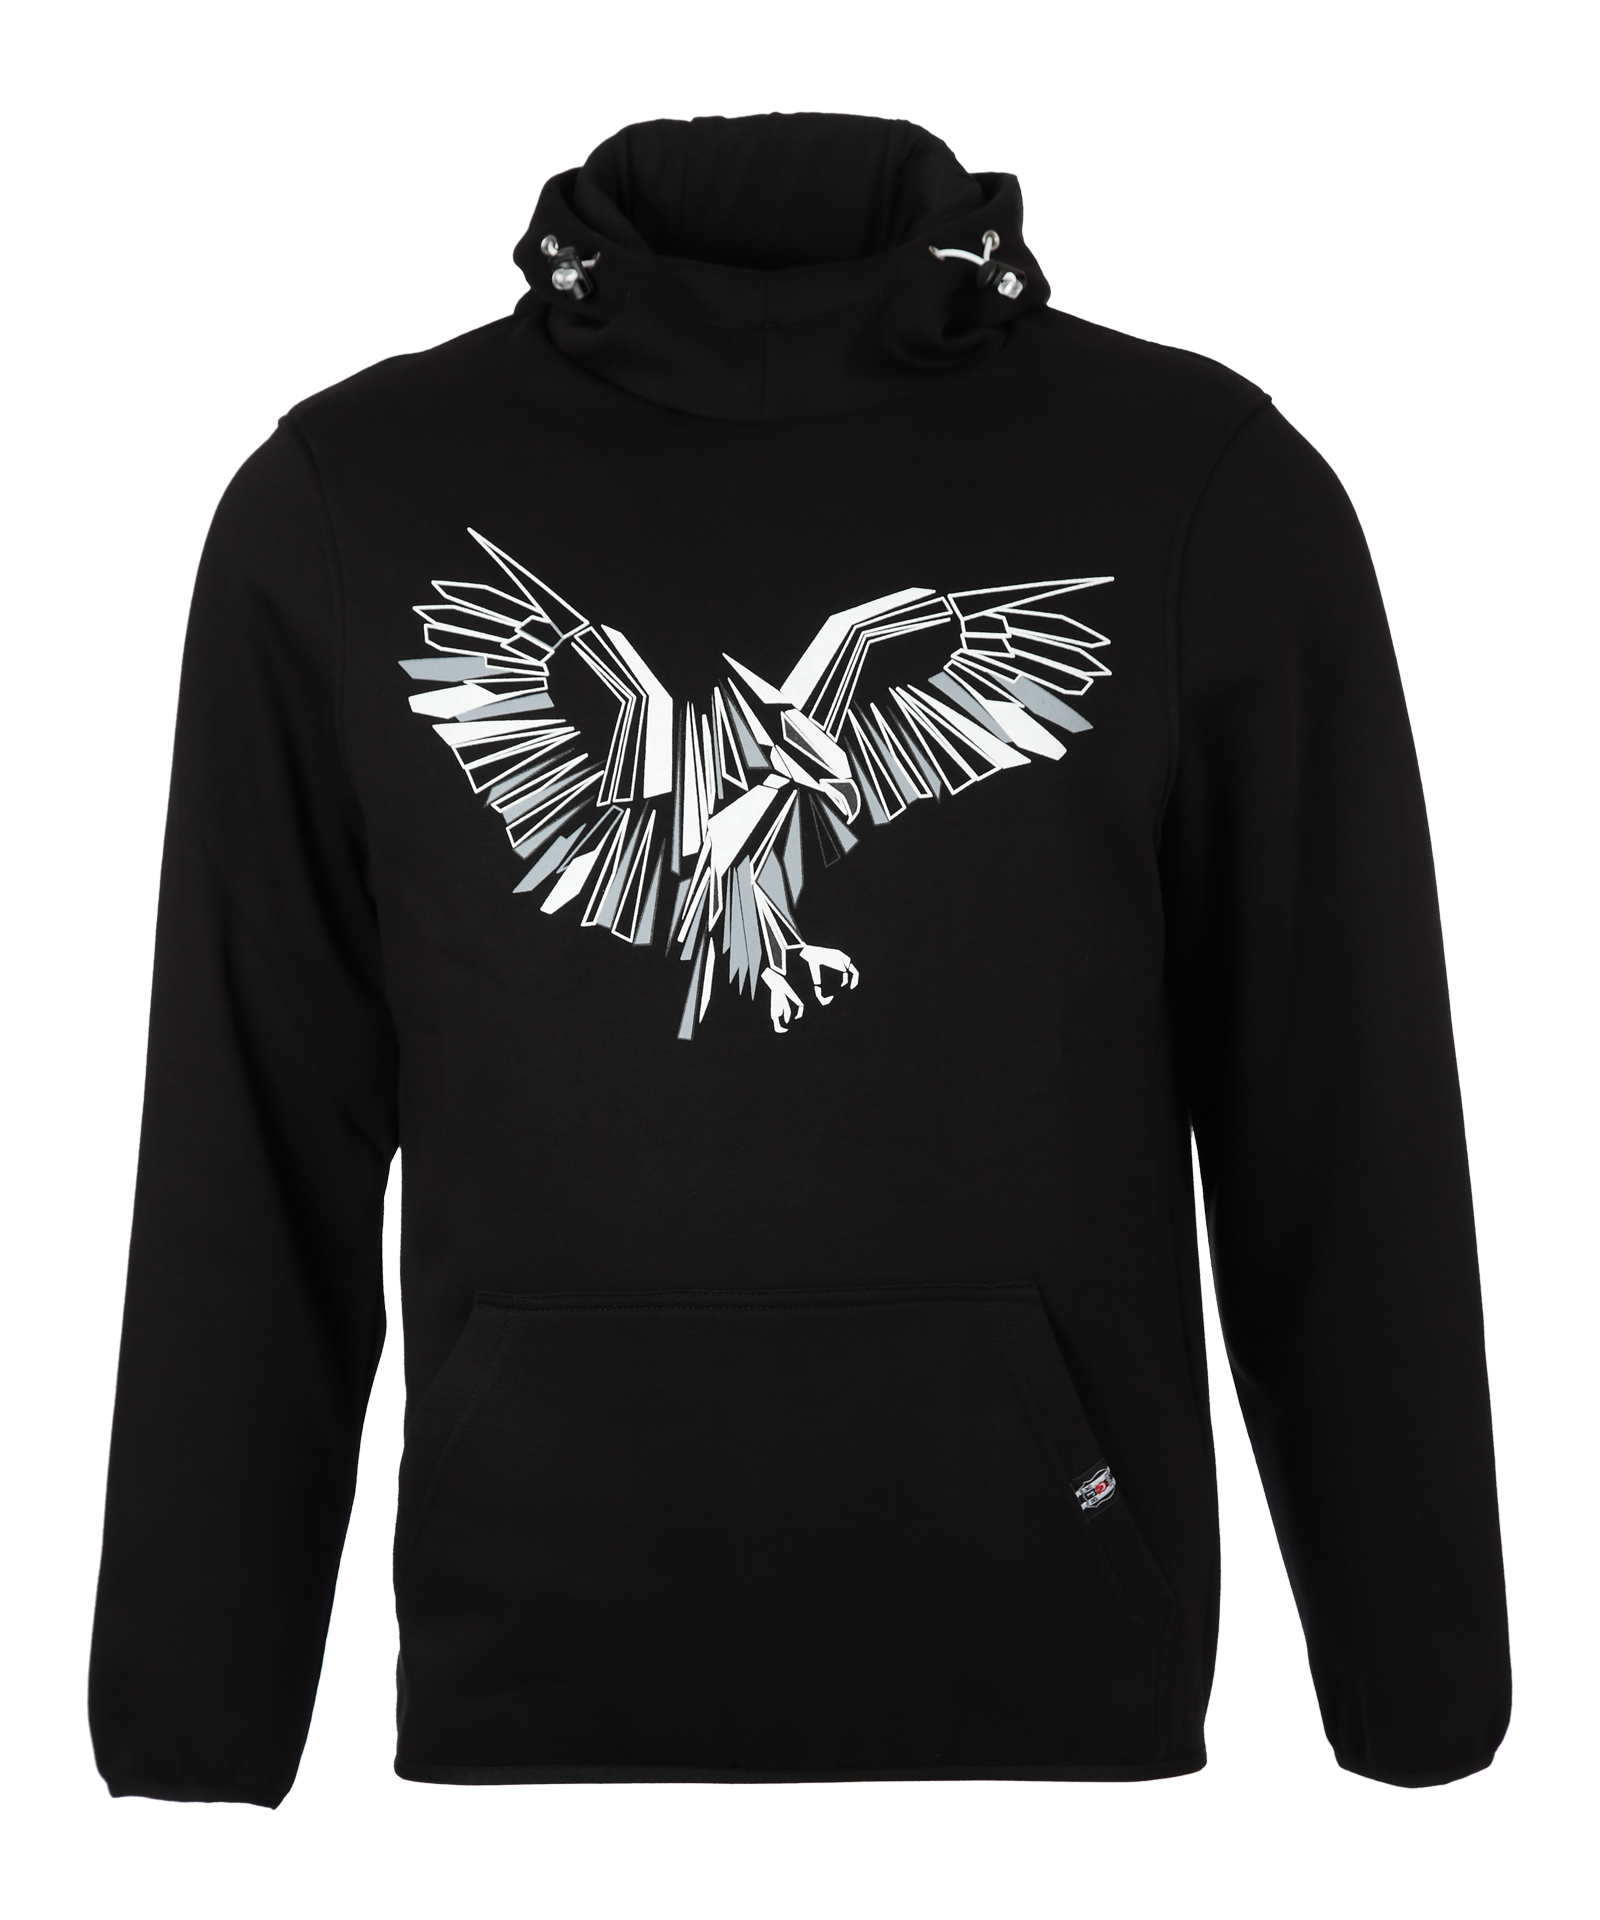 BEŞİKTAŞ DESIGN EAGLE MEN'S HOODED SWEATSHIRT